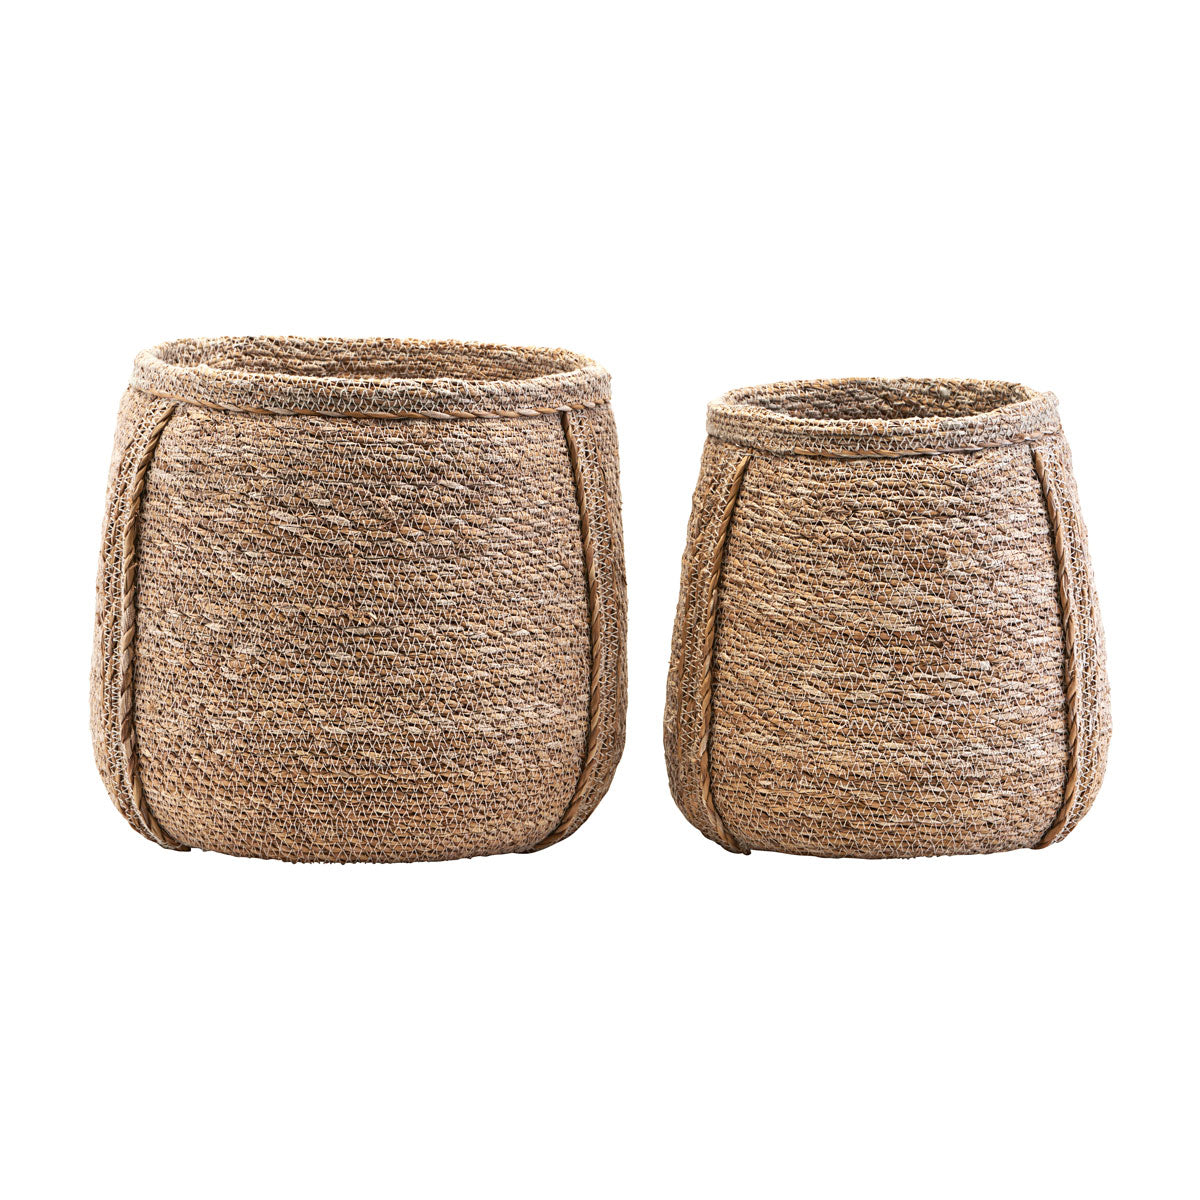 Seagrass Basket, natural Plant pot storage from House doctor